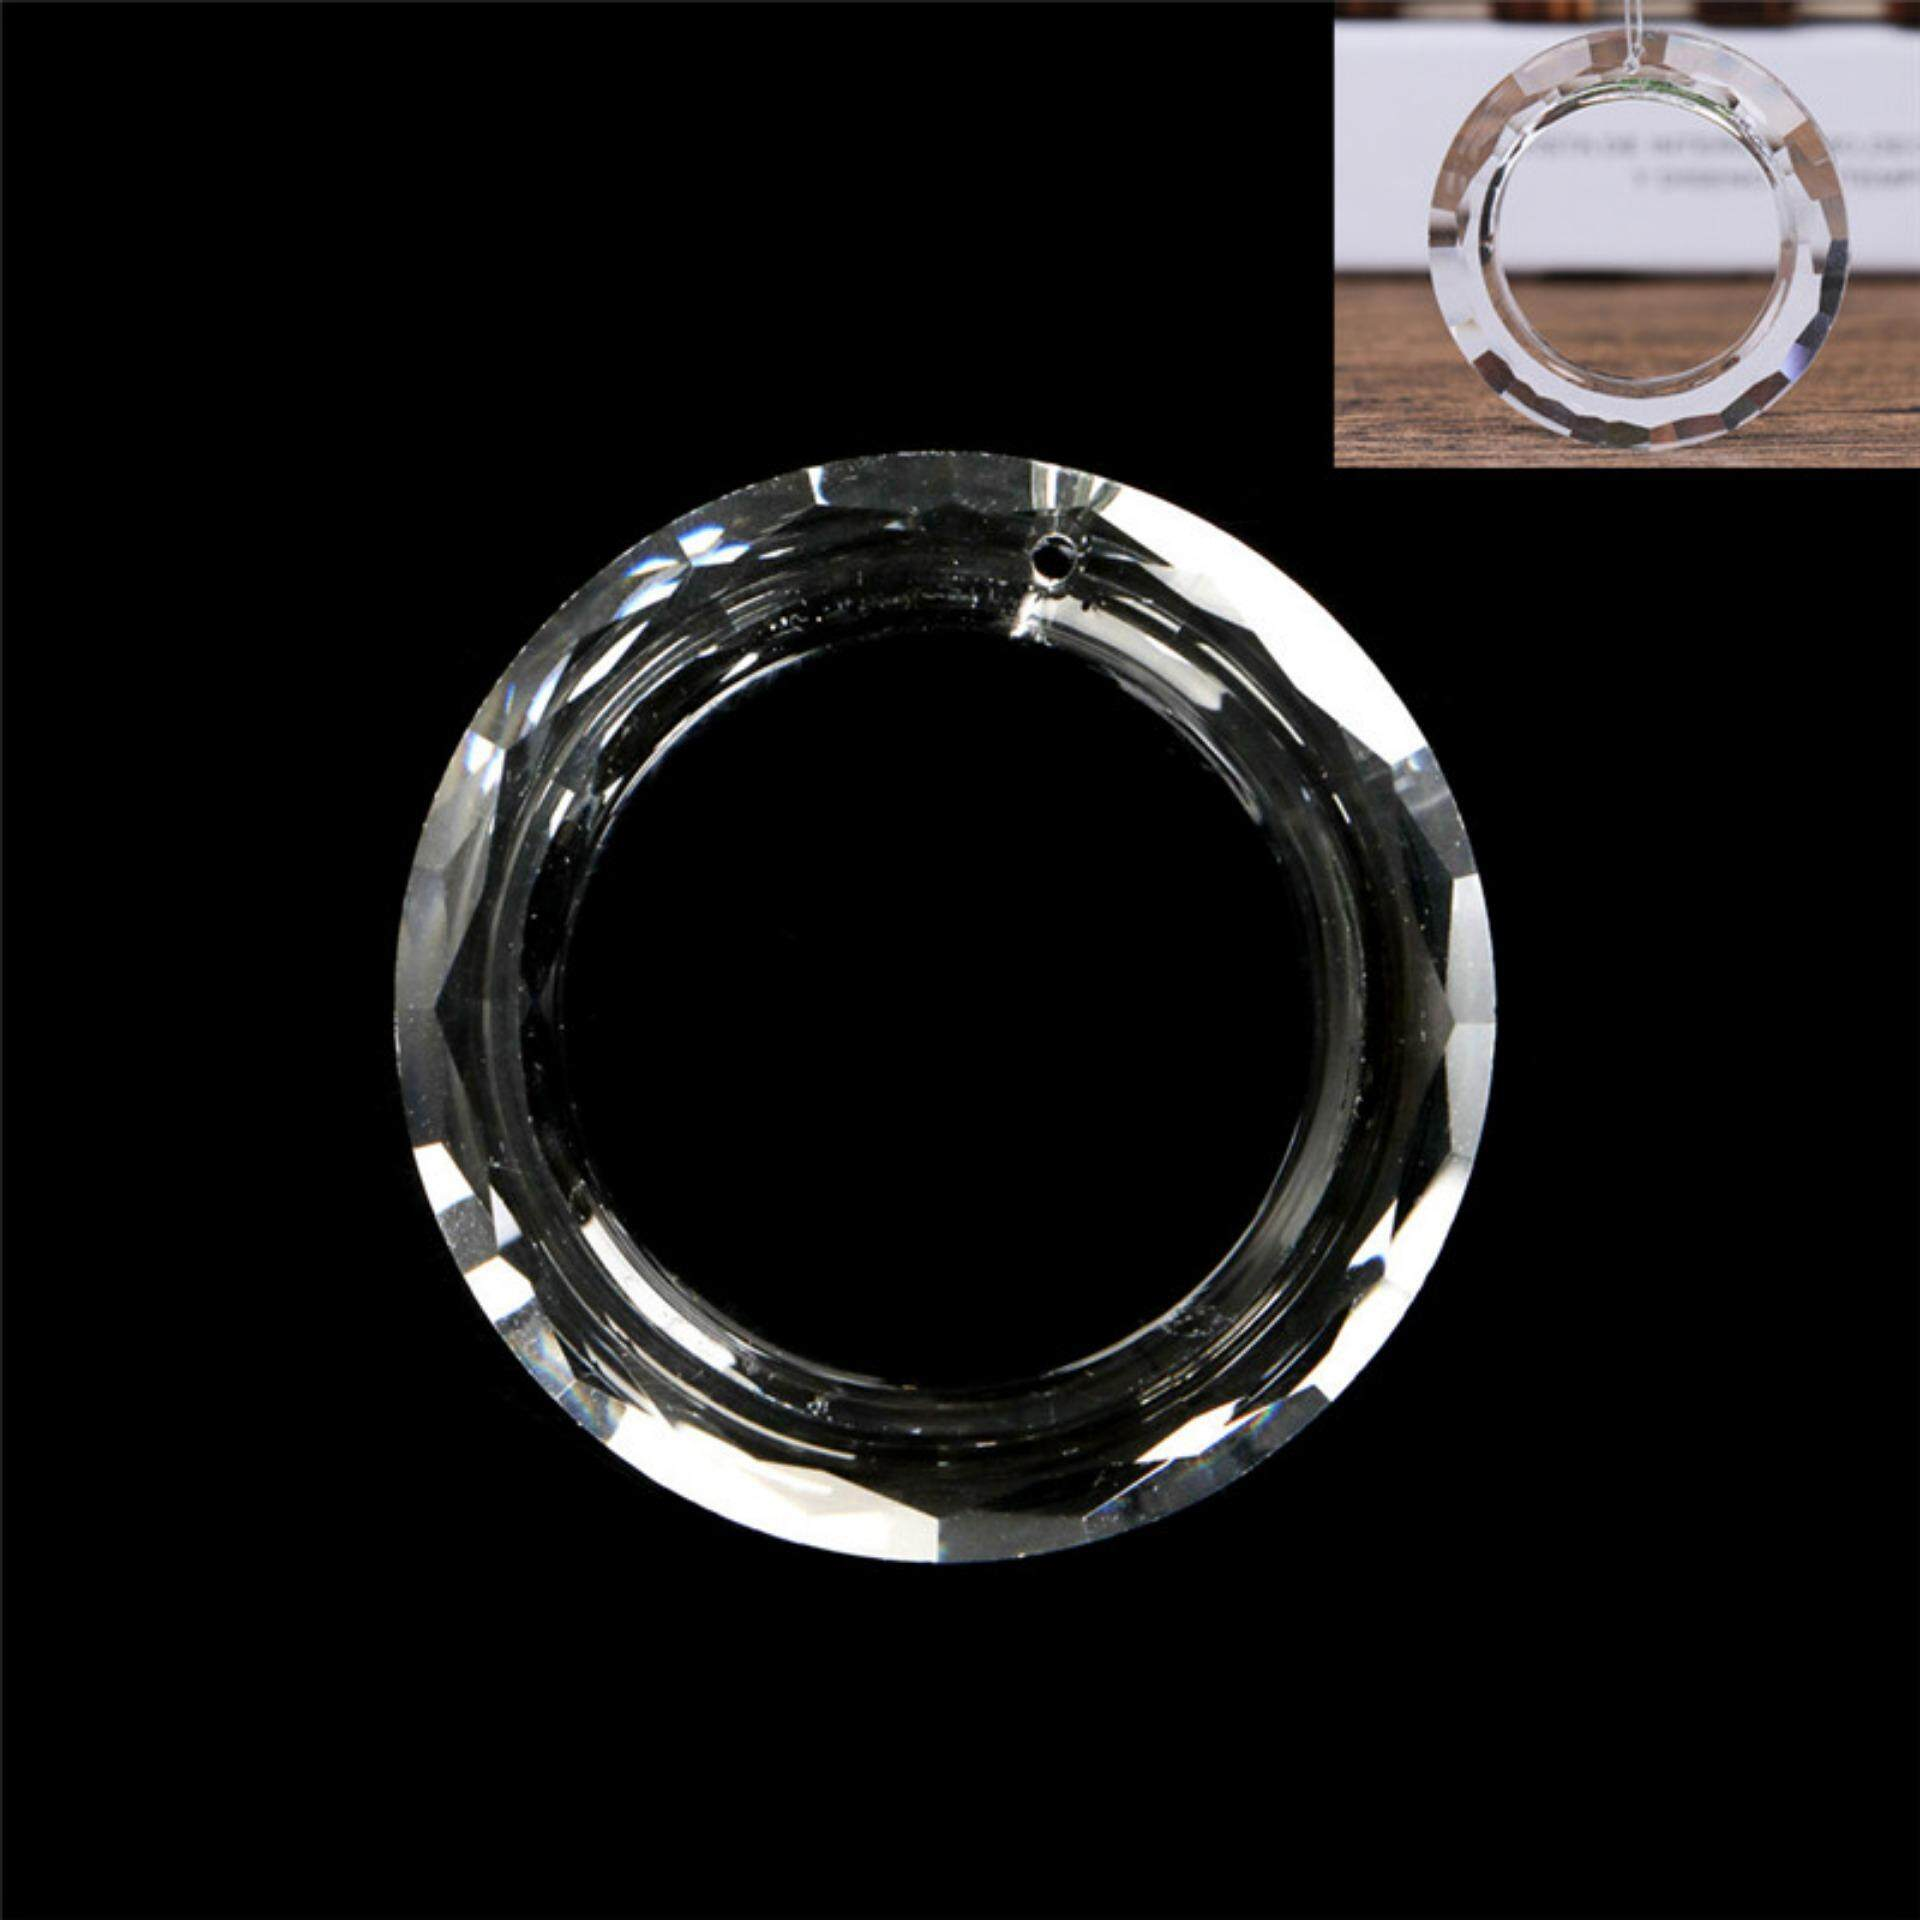 50mm Crystal Hanging Ring Chandelier Glass Pendant Home Room Decoration Gift - intl